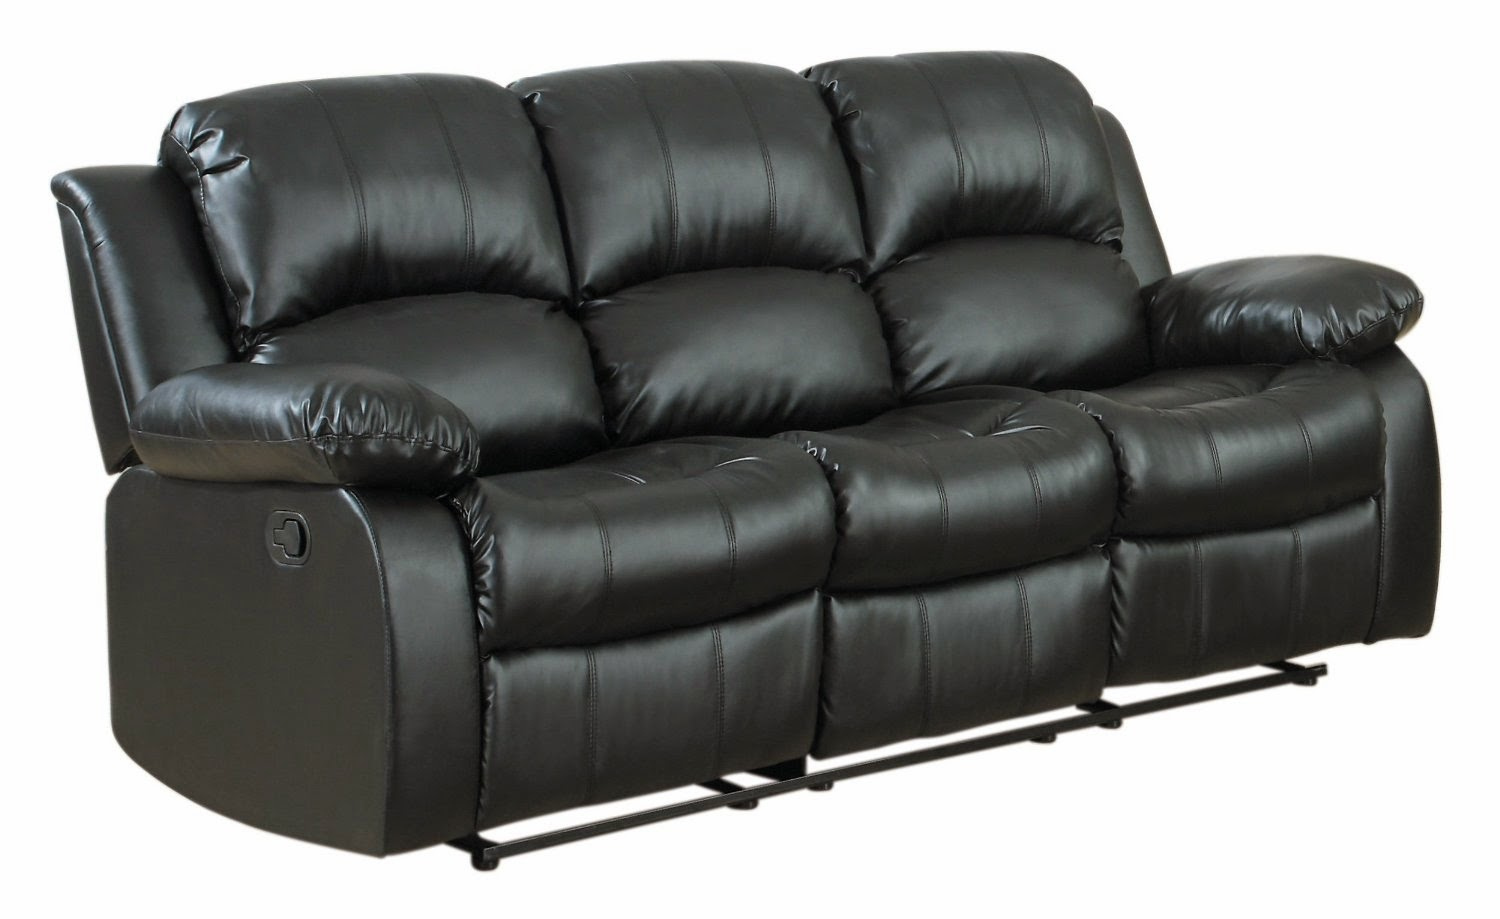 Best recliner sofa brand recommendation wanted cheap for Cheap black couch set